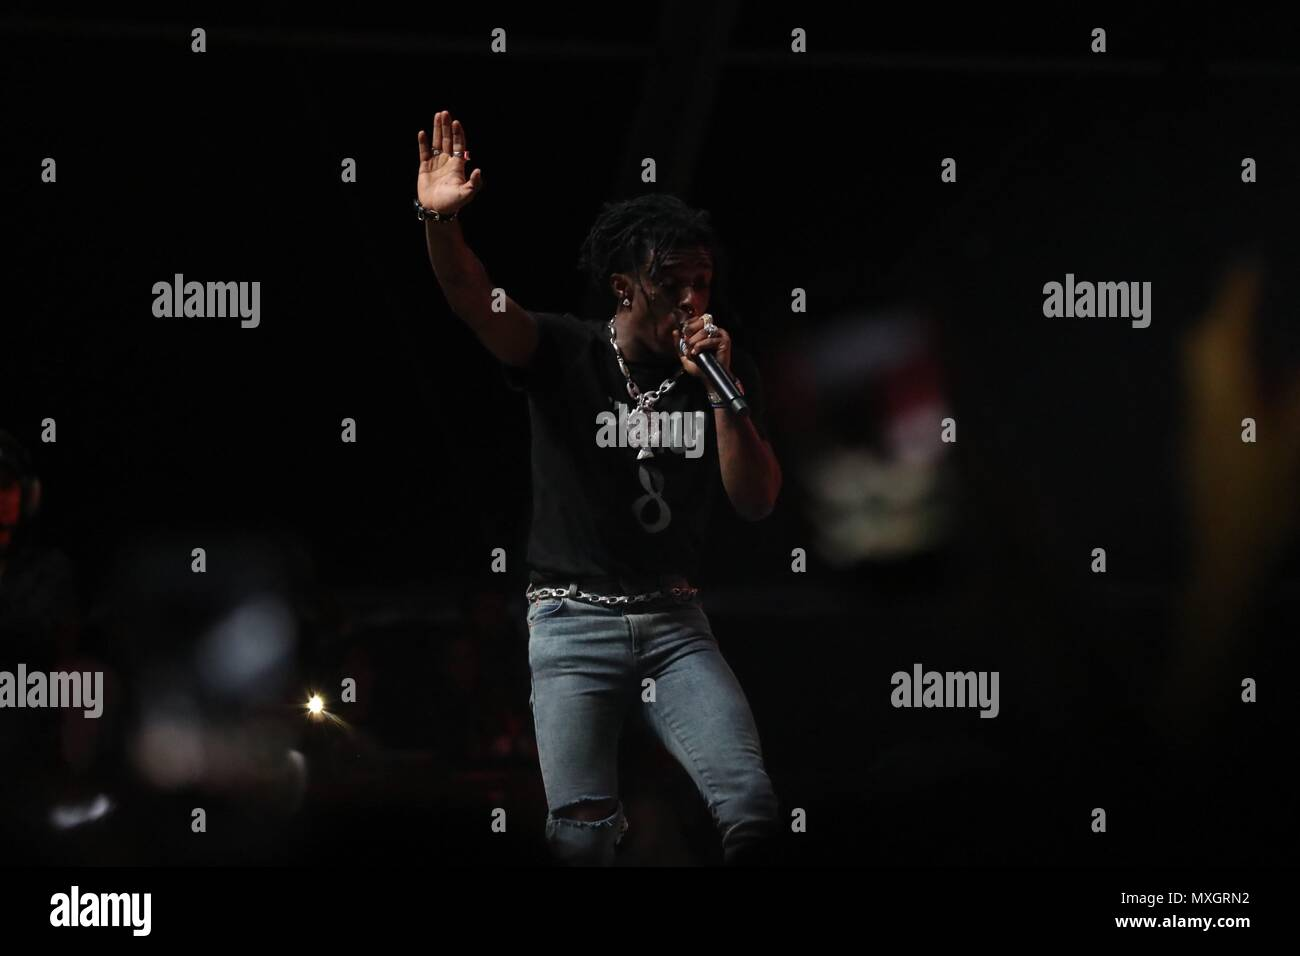 New York, NY, USA  3rd June, 2018  Lil Uzi Vert on stage for